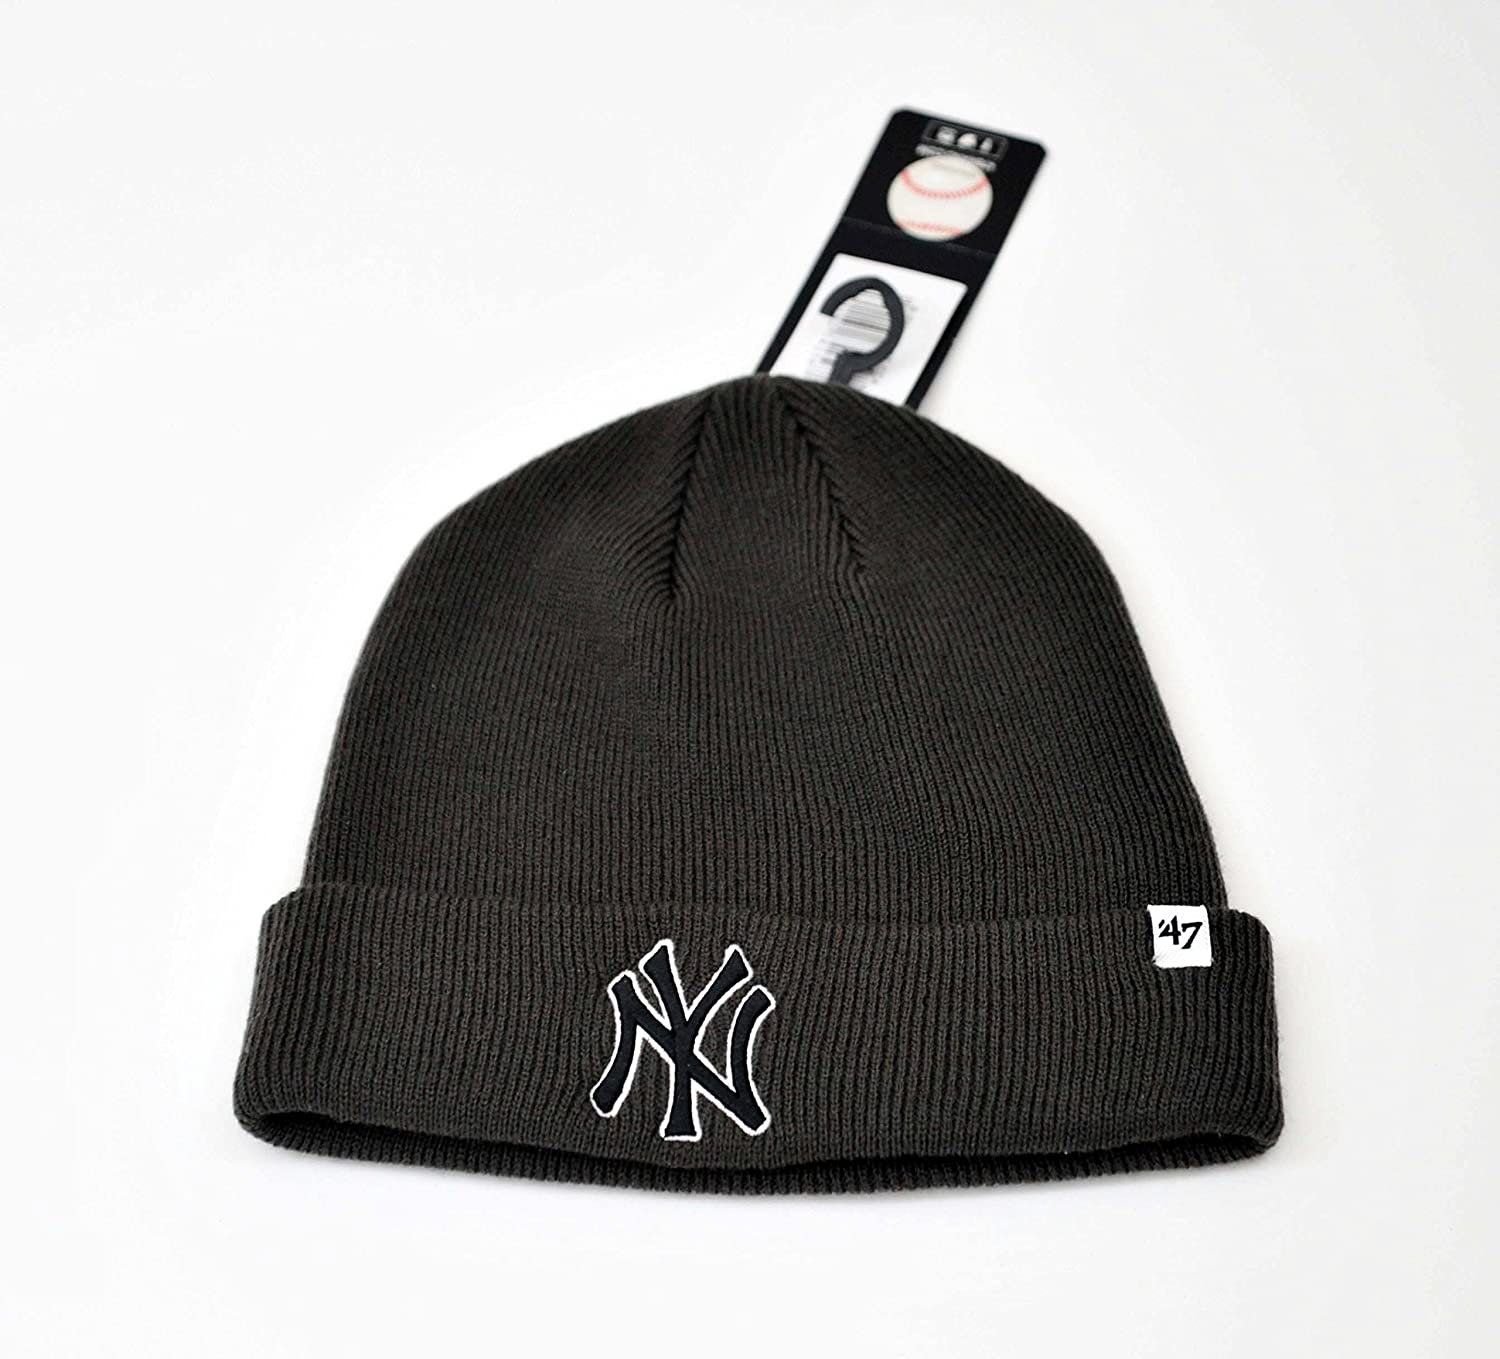 667d2cdb409 Amazon.com   MLB New York Yankees  47 Brand Cuff Knit Hat Beanie - Charcoal  Gray   Sports   Outdoors